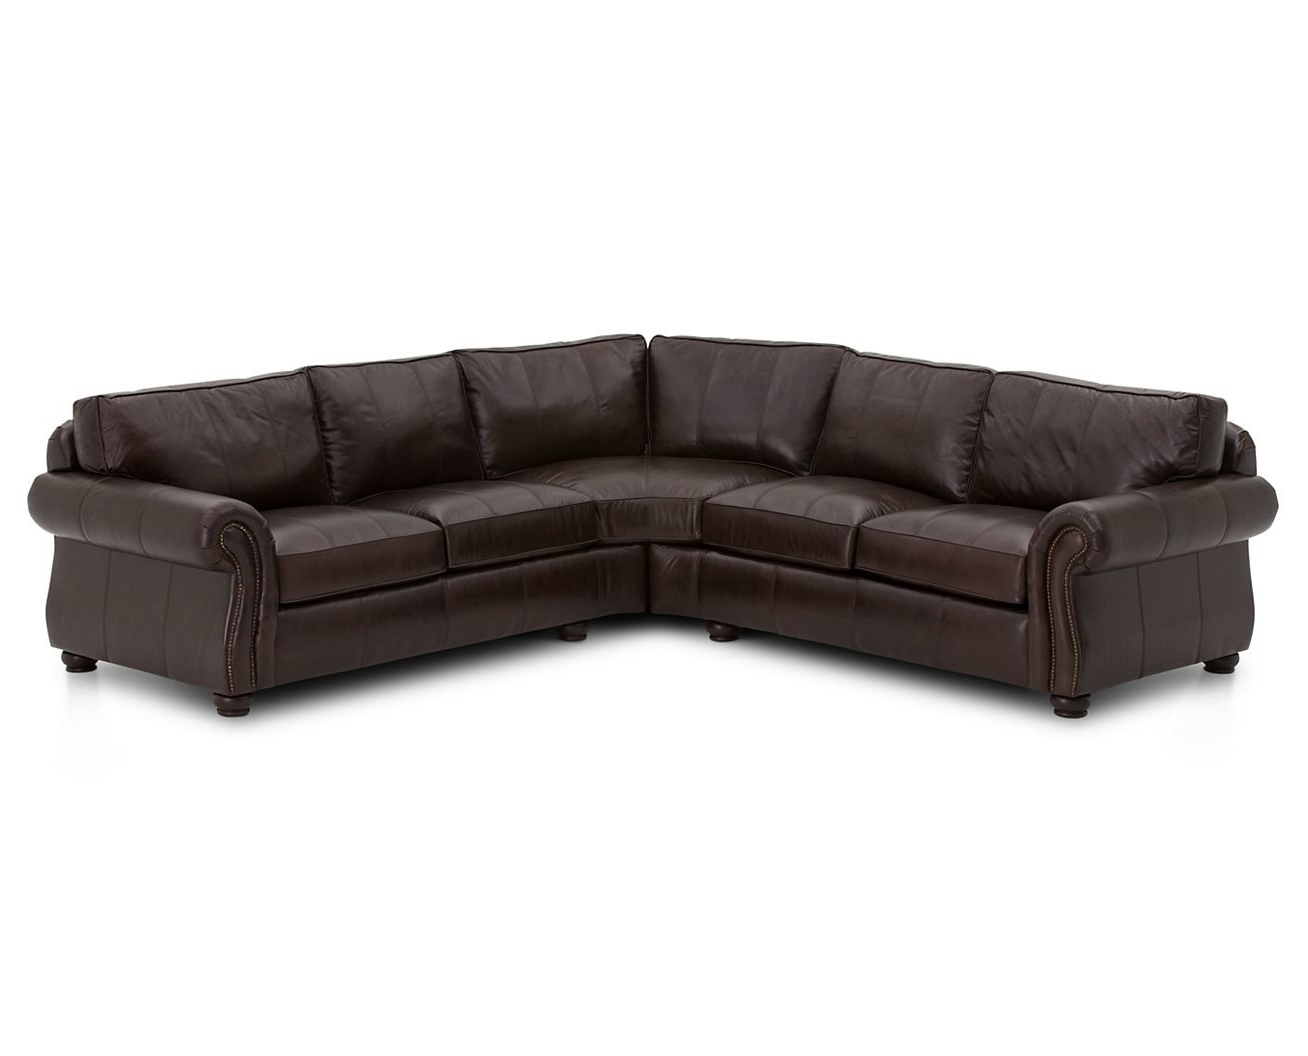 Furniture Row Sectional Sofas With Current Furniture Row Sectionals (View 1 of 20)